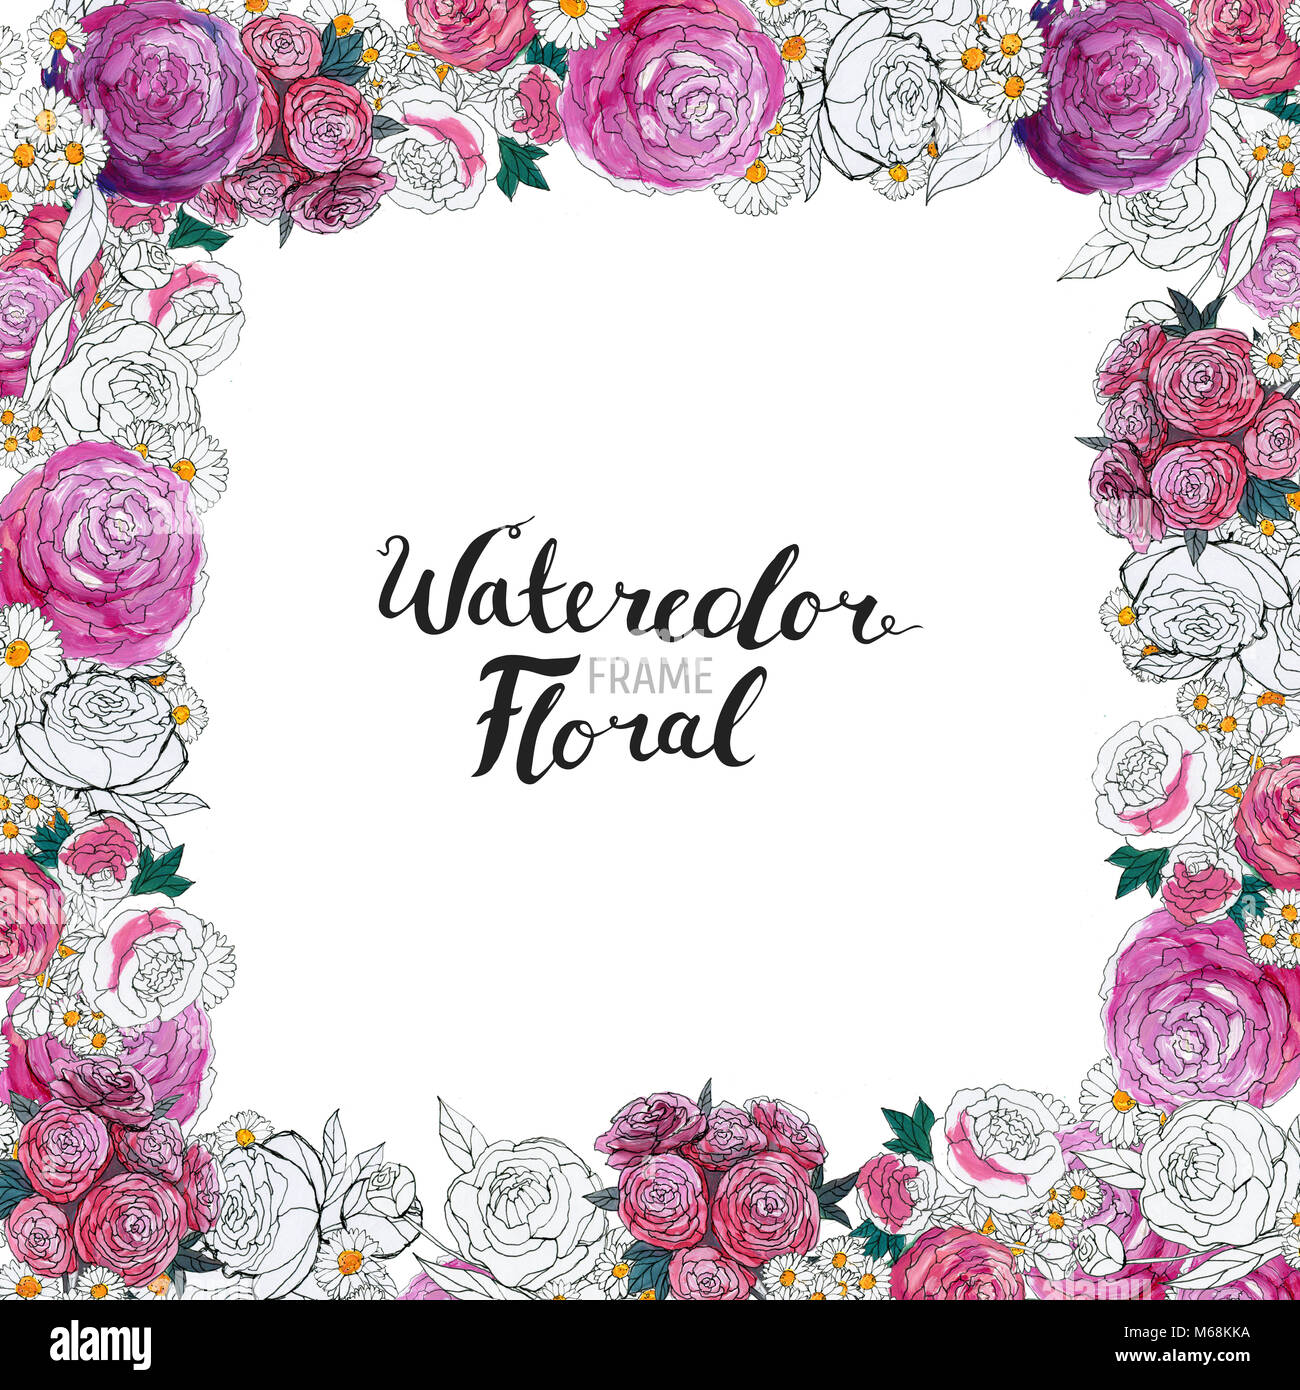 Watercolor floral background hand painted border of flowers good watercolor floral background hand painted border of flowers good for invitations and greeting cards frame of roses isolated on white and brush lett m4hsunfo